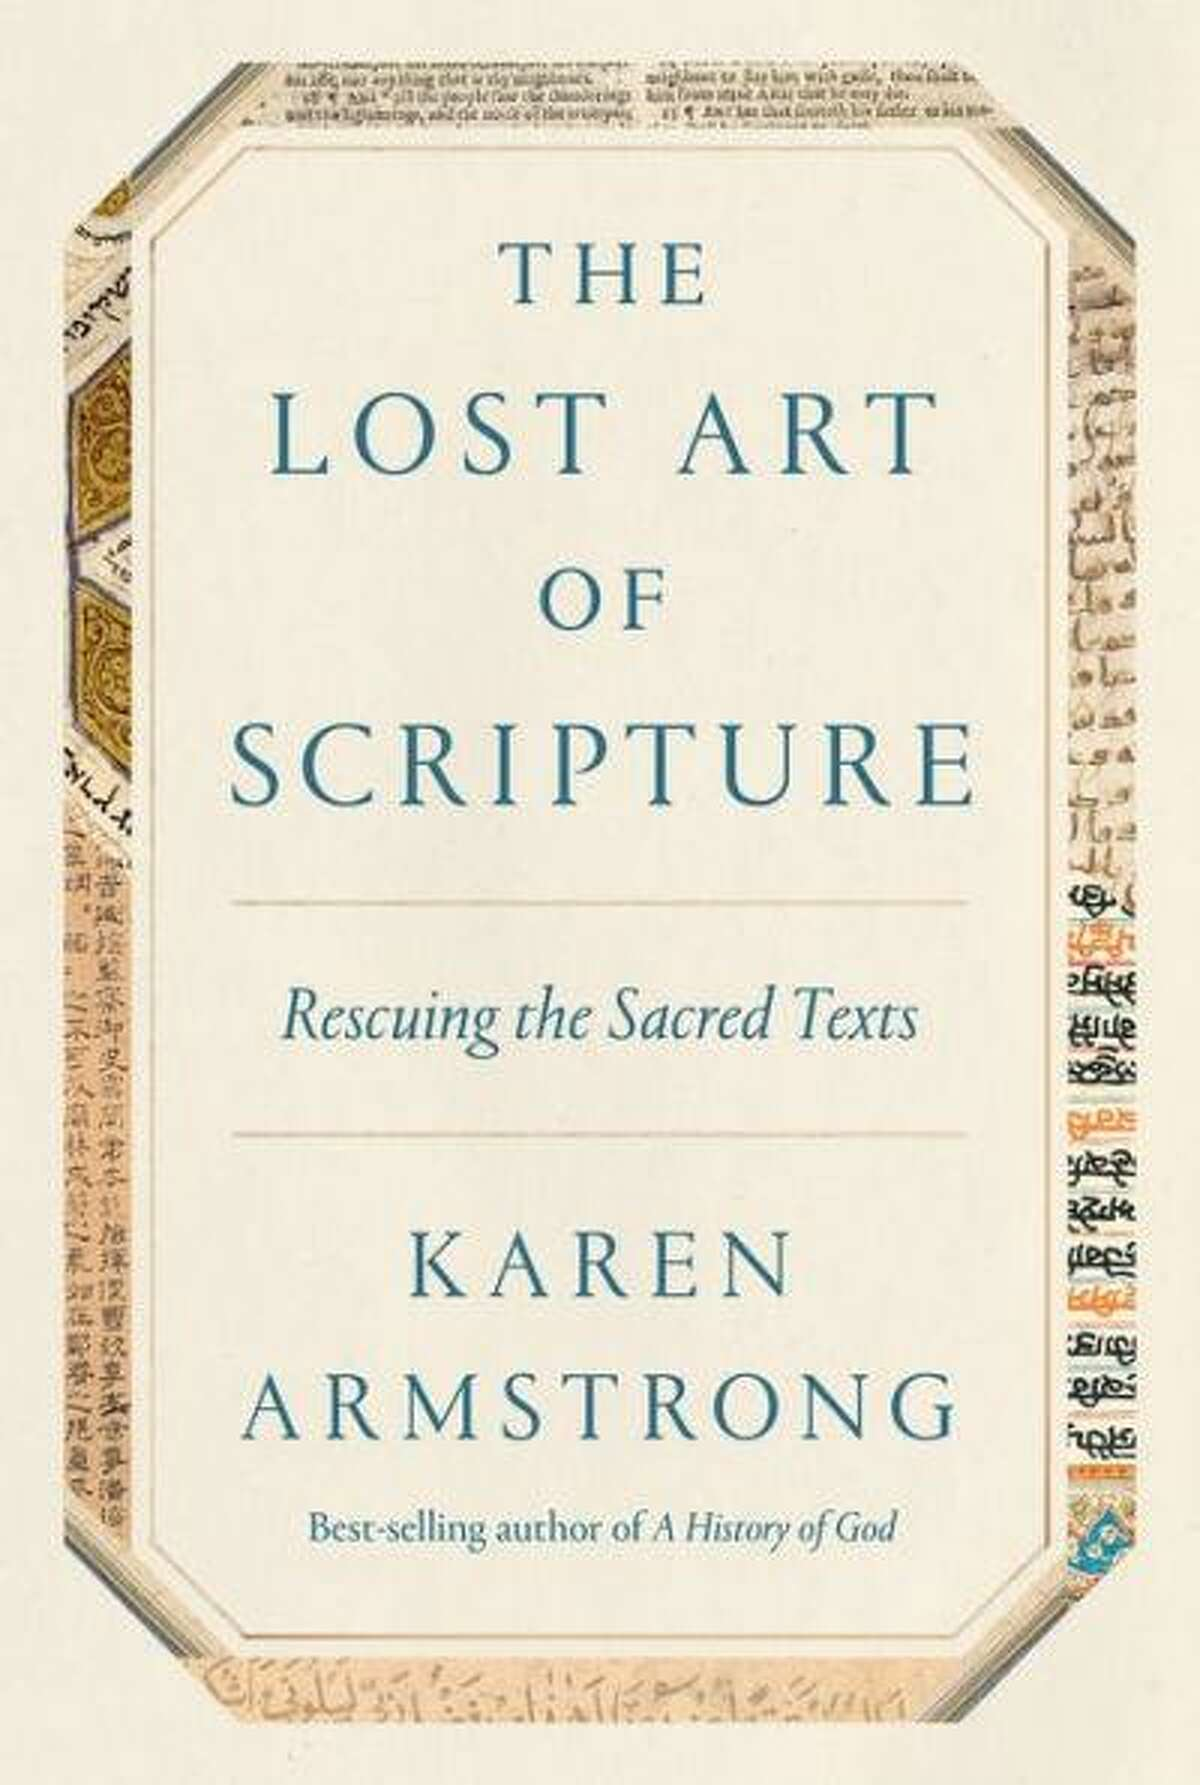 Cover image for The Lost Art of Scripture: Rescuing the Sacred Texts by Karen Armstrong